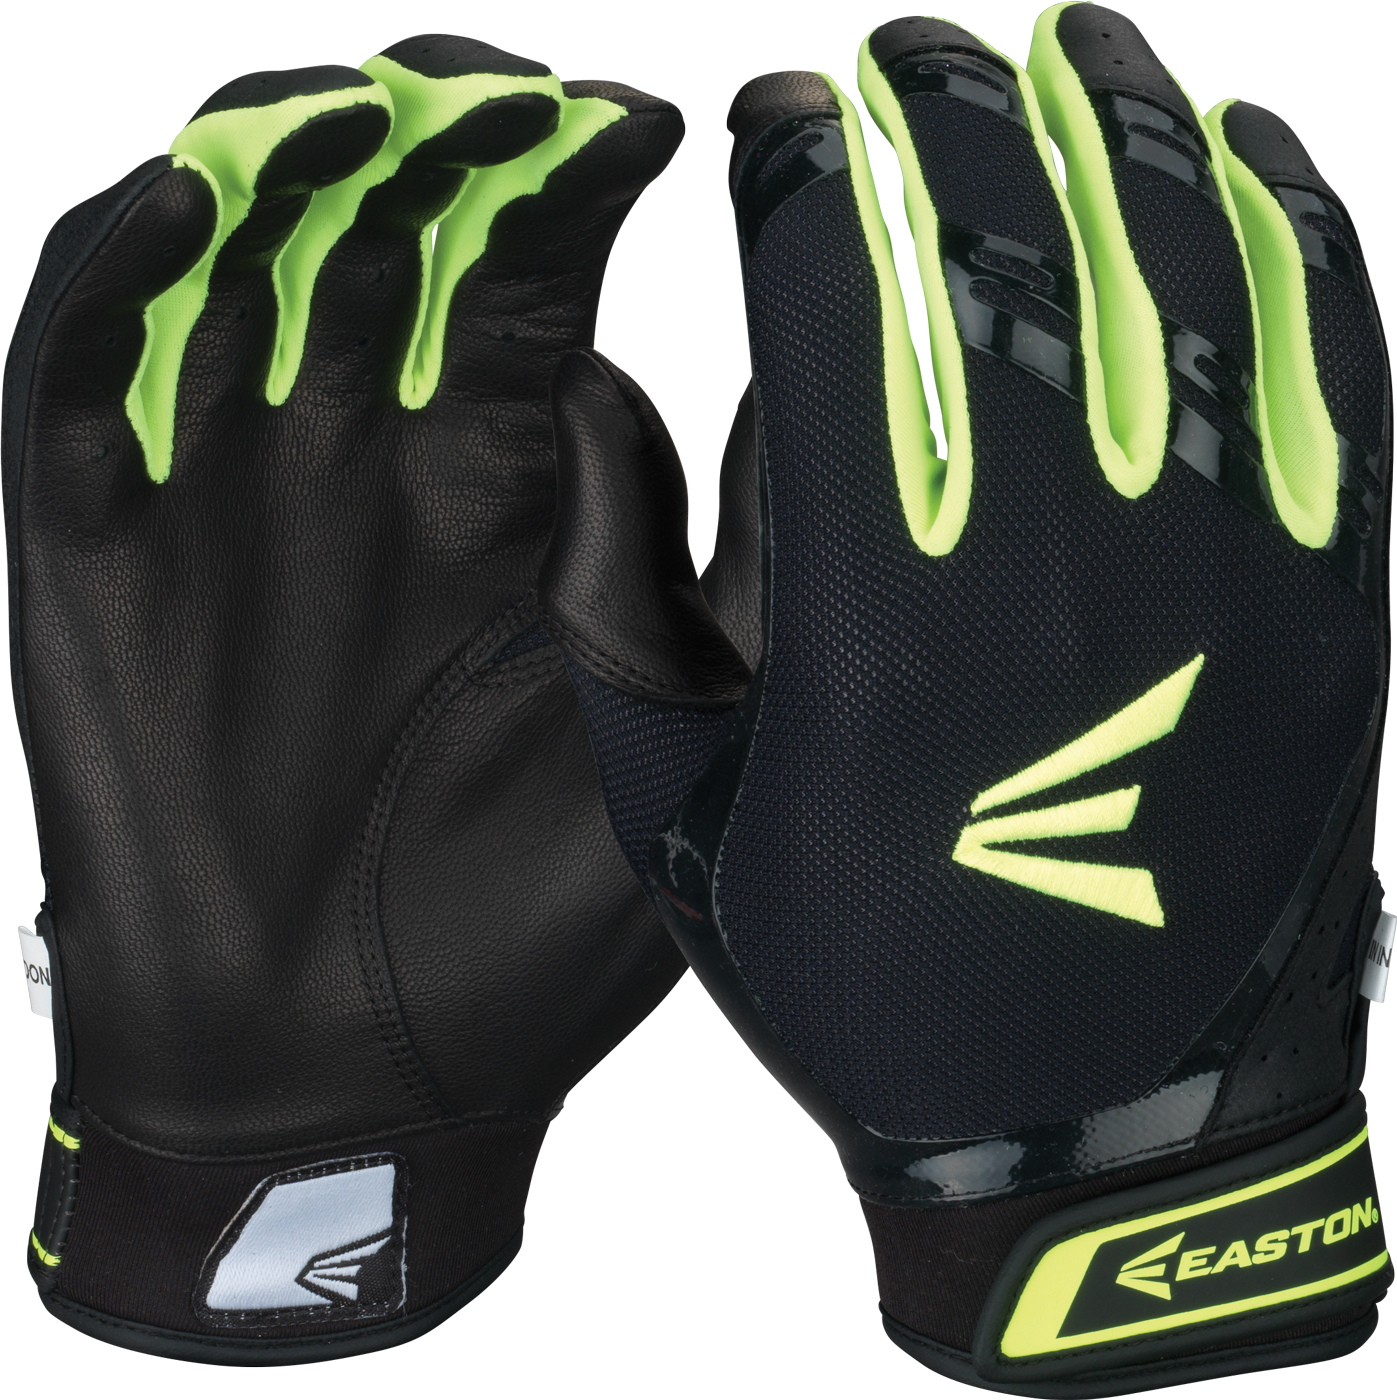 baseball batting gloves bing images